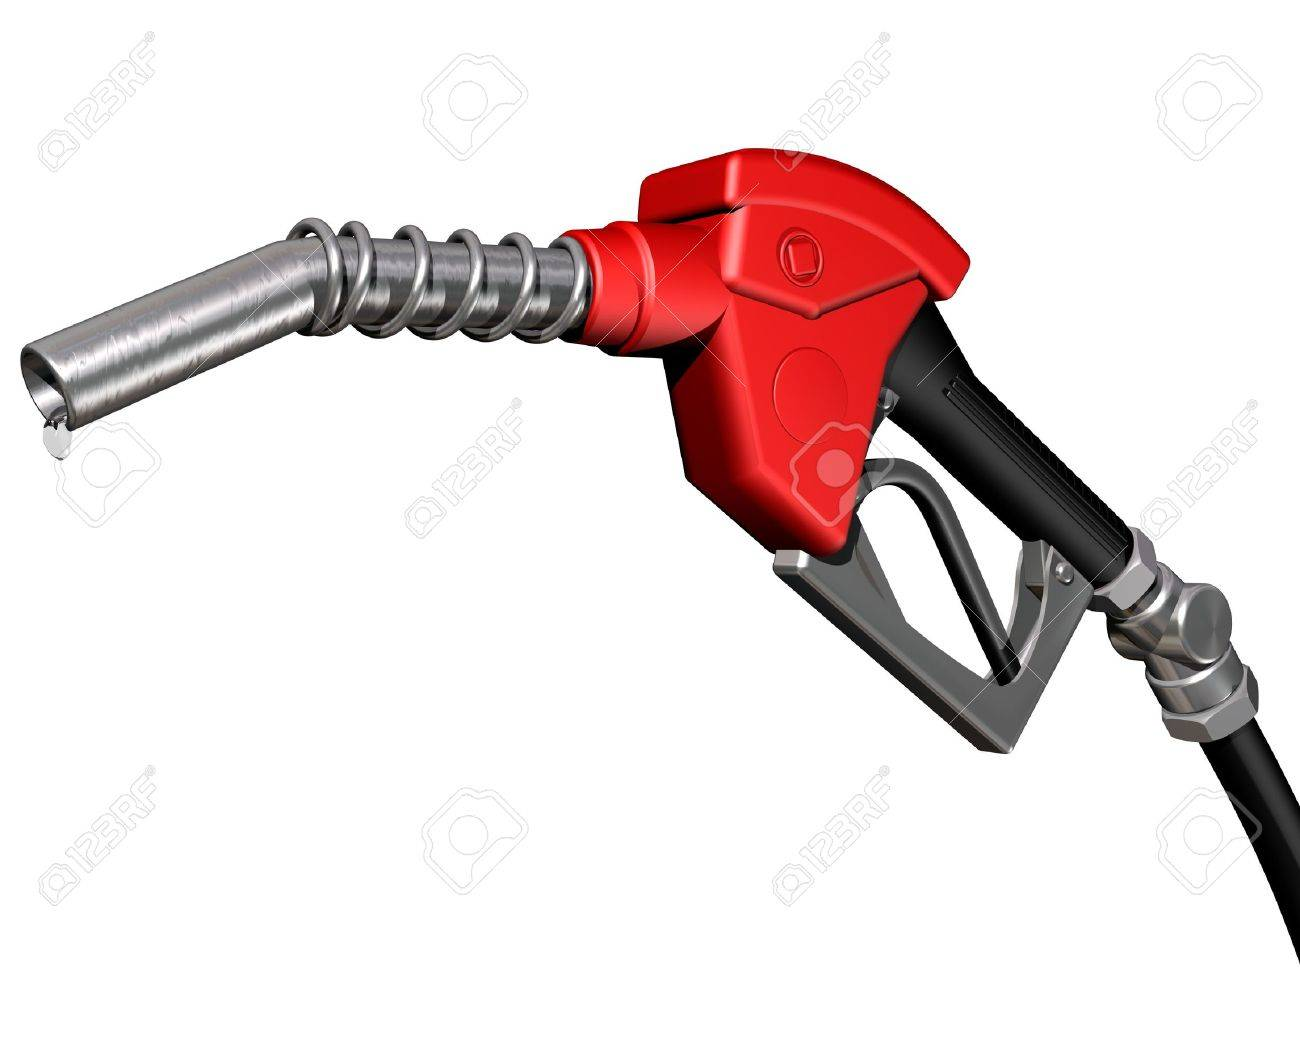 Isolated illustration of a dripping gas pump nozzle Stock Photo - 3181546